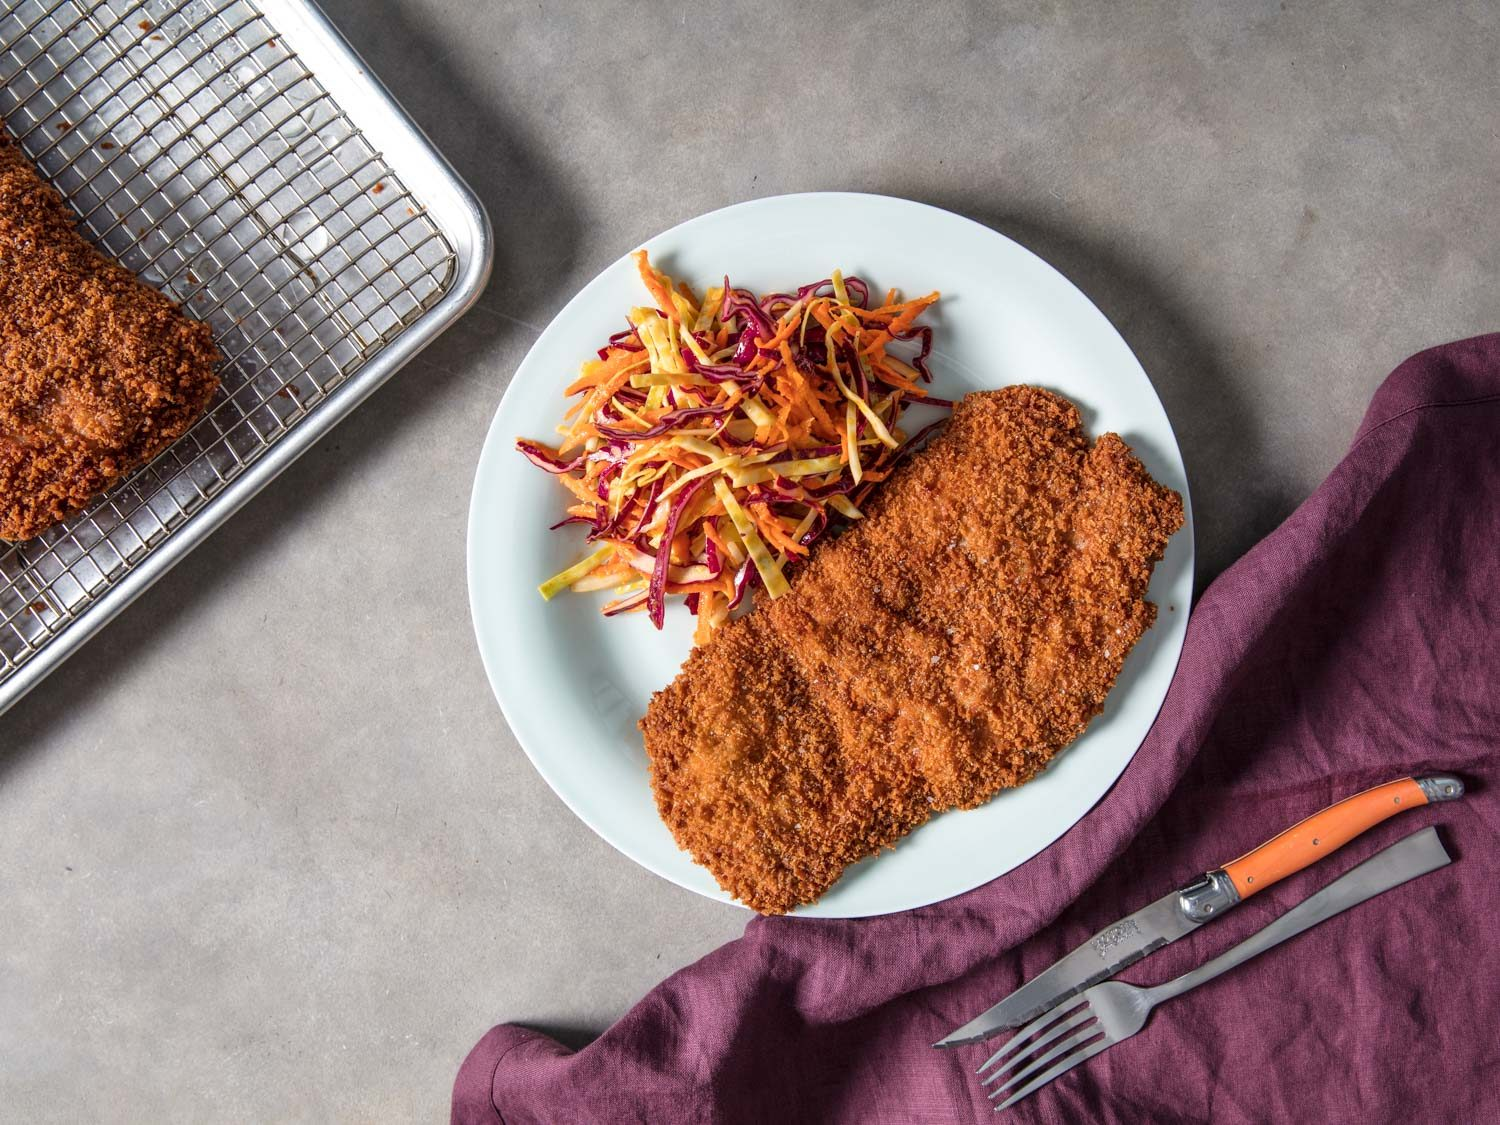 Pork Schnitzel (Breaded and Fried Pork Cutlet)